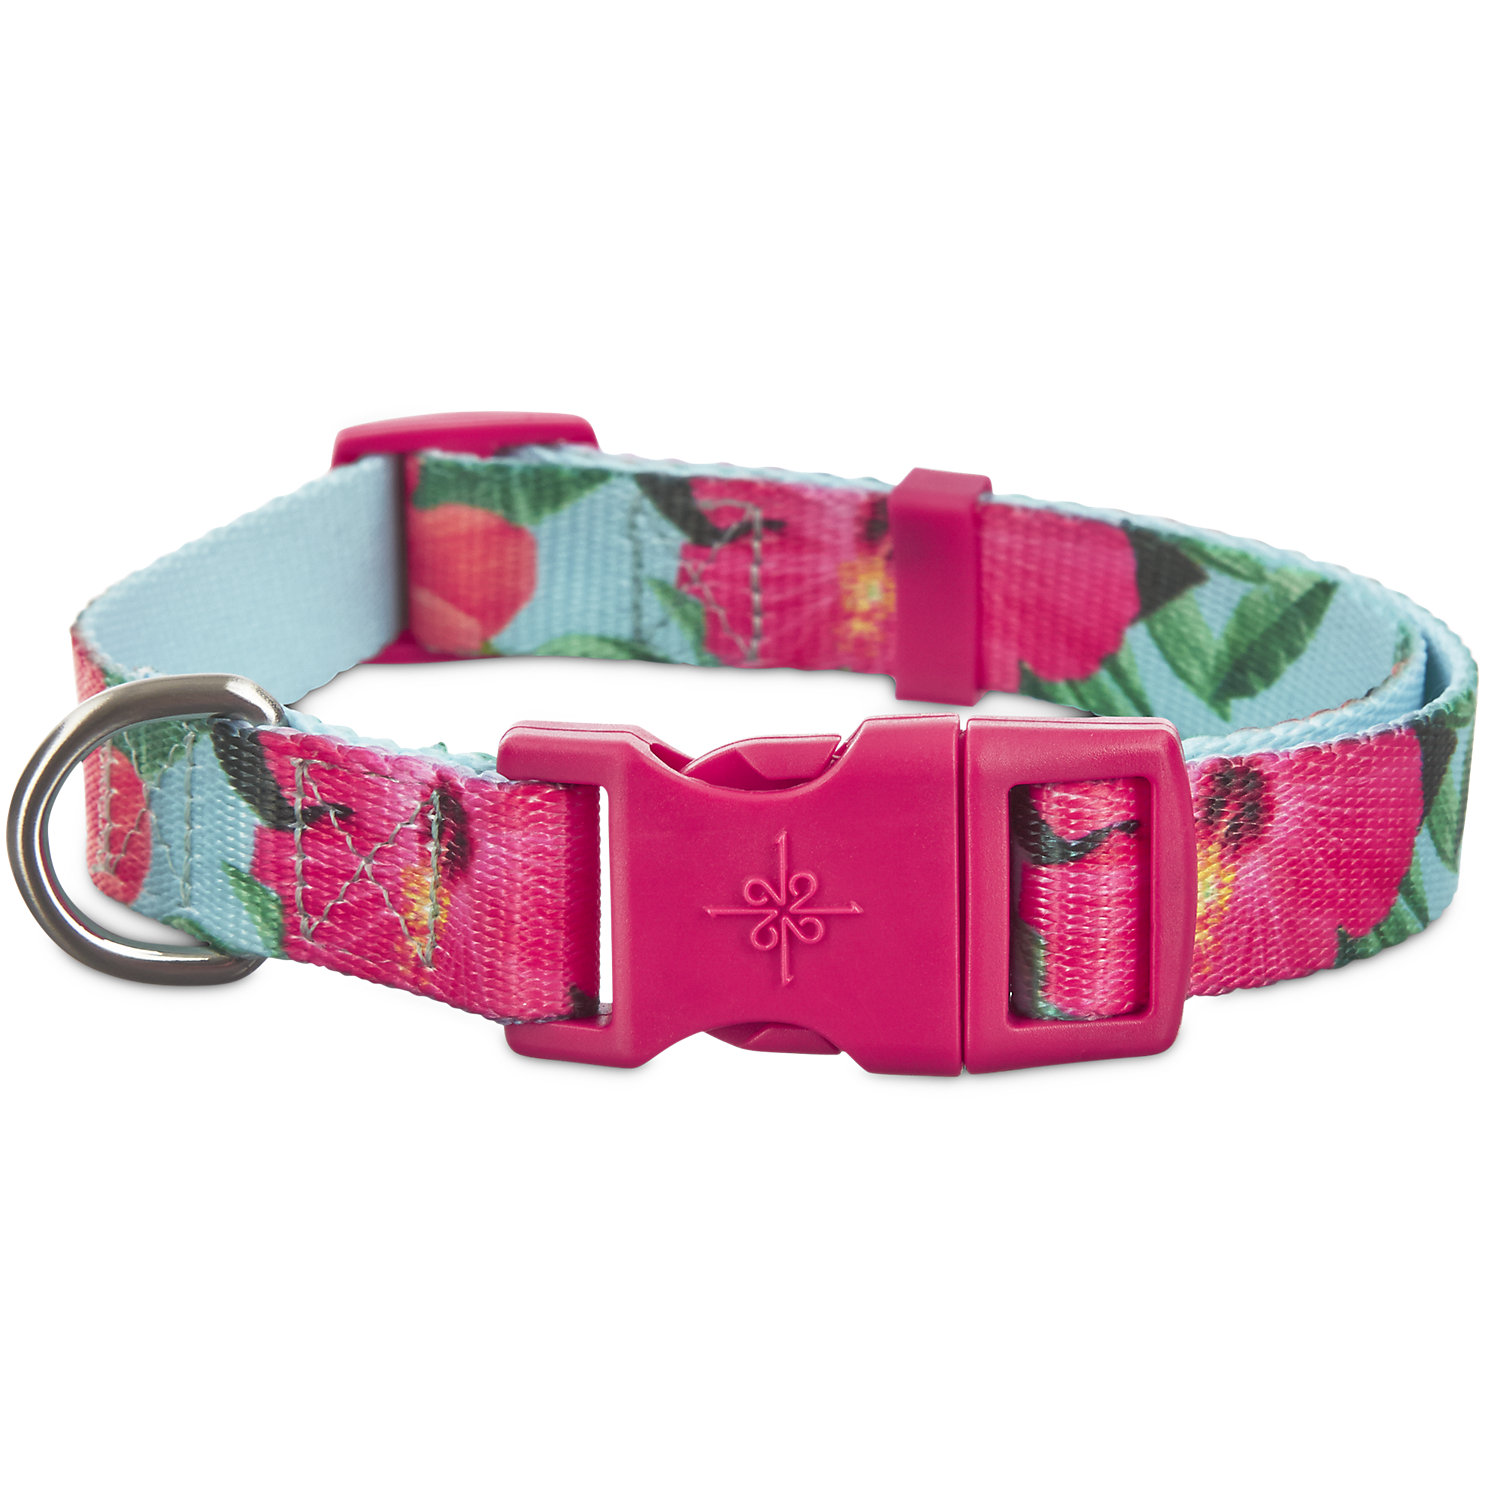 Home collars blueberry pet dog collar nautical flags inspired -  33 Good2go Hibiscus Dog Collar